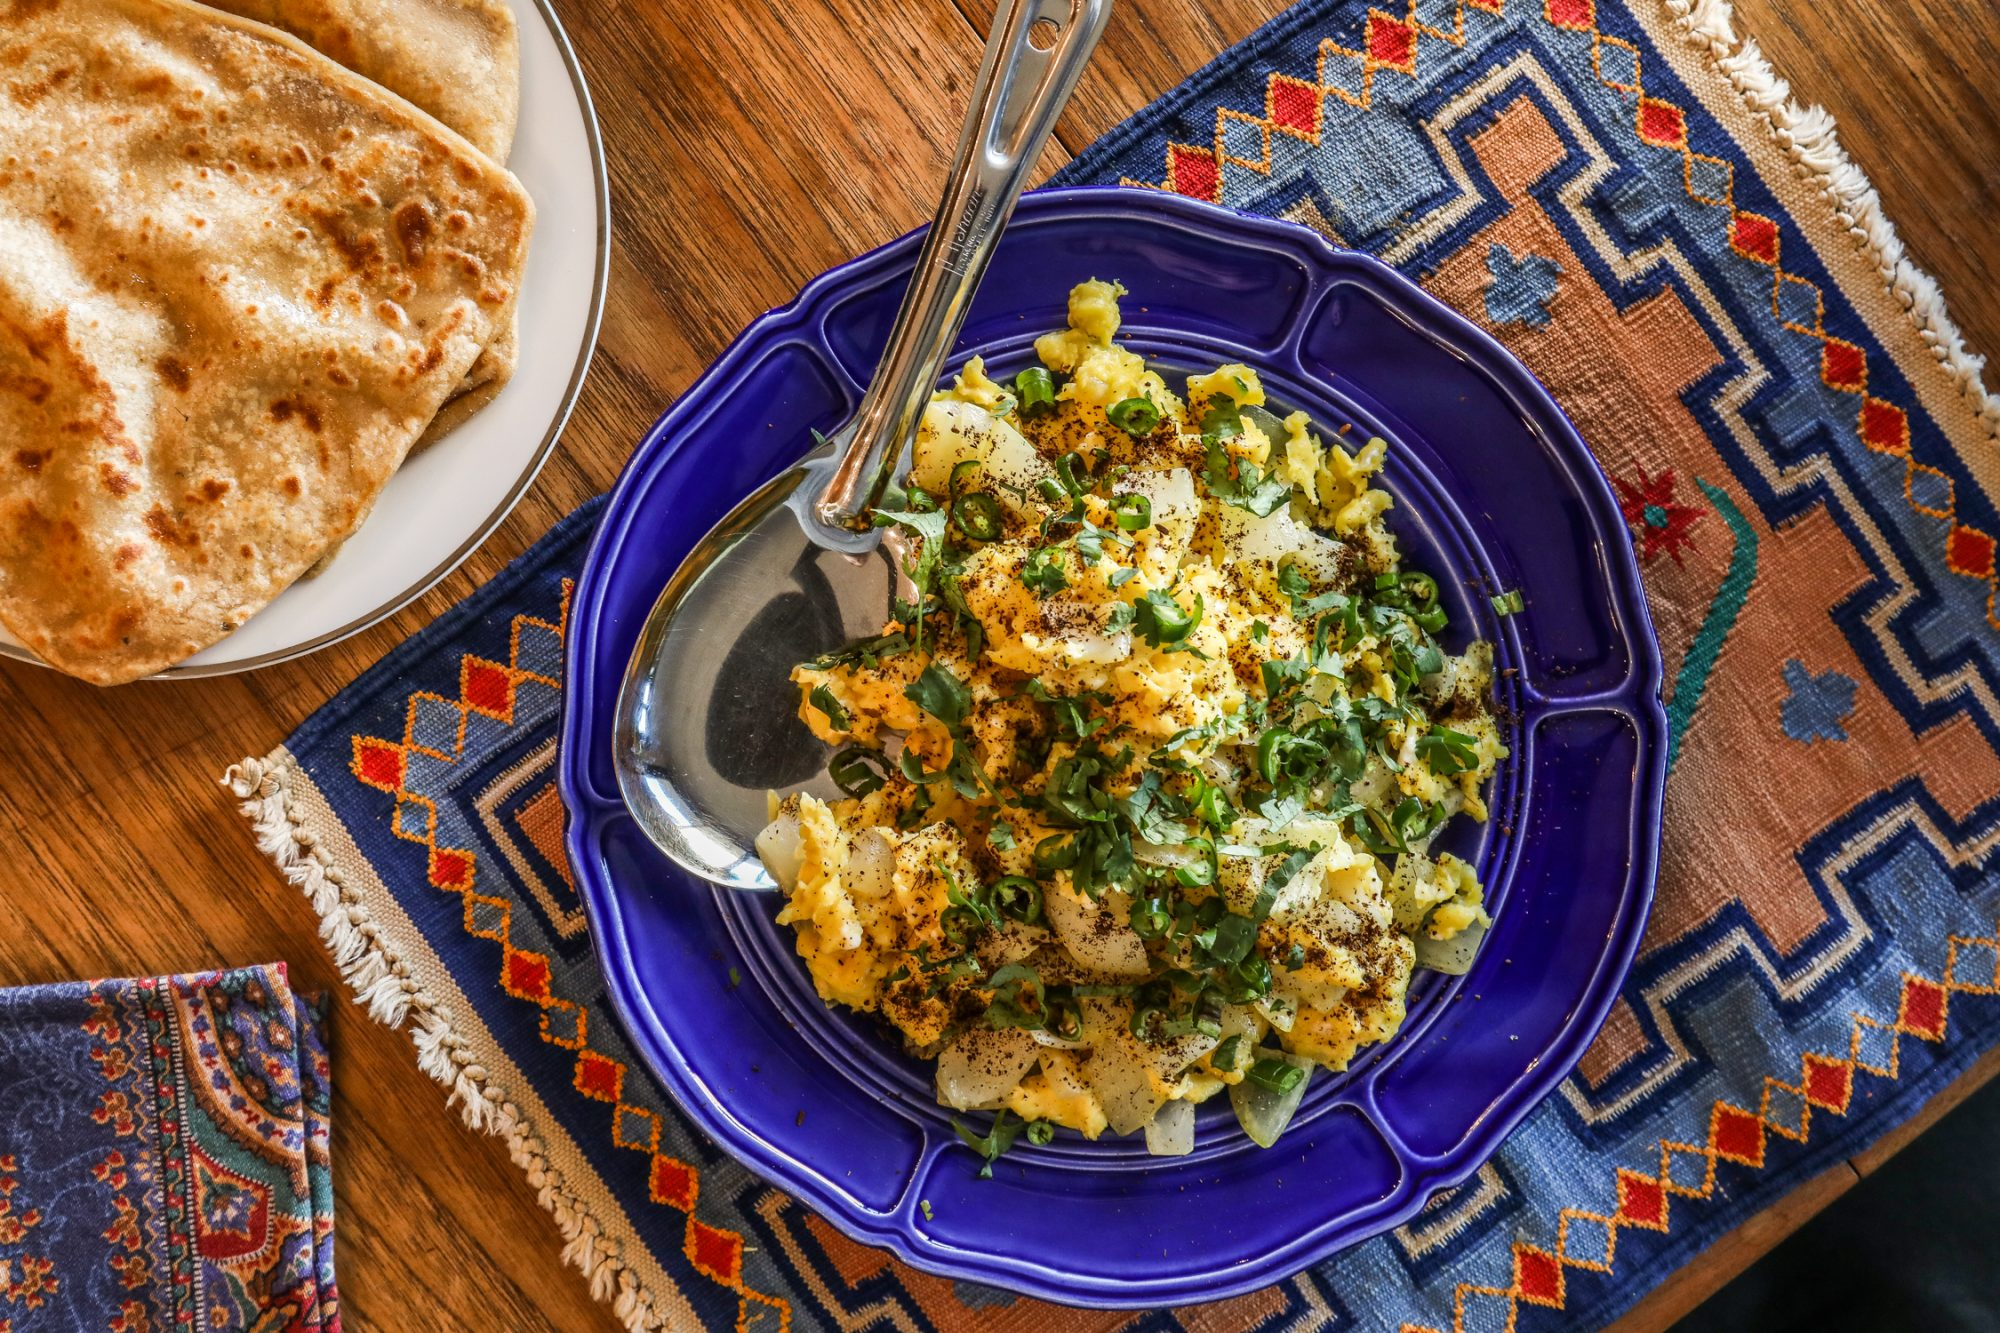 Julie Sahni Ande Ki Bhurji | Scrambled Eggs with Cumin and Fragrant Herbs Recipe